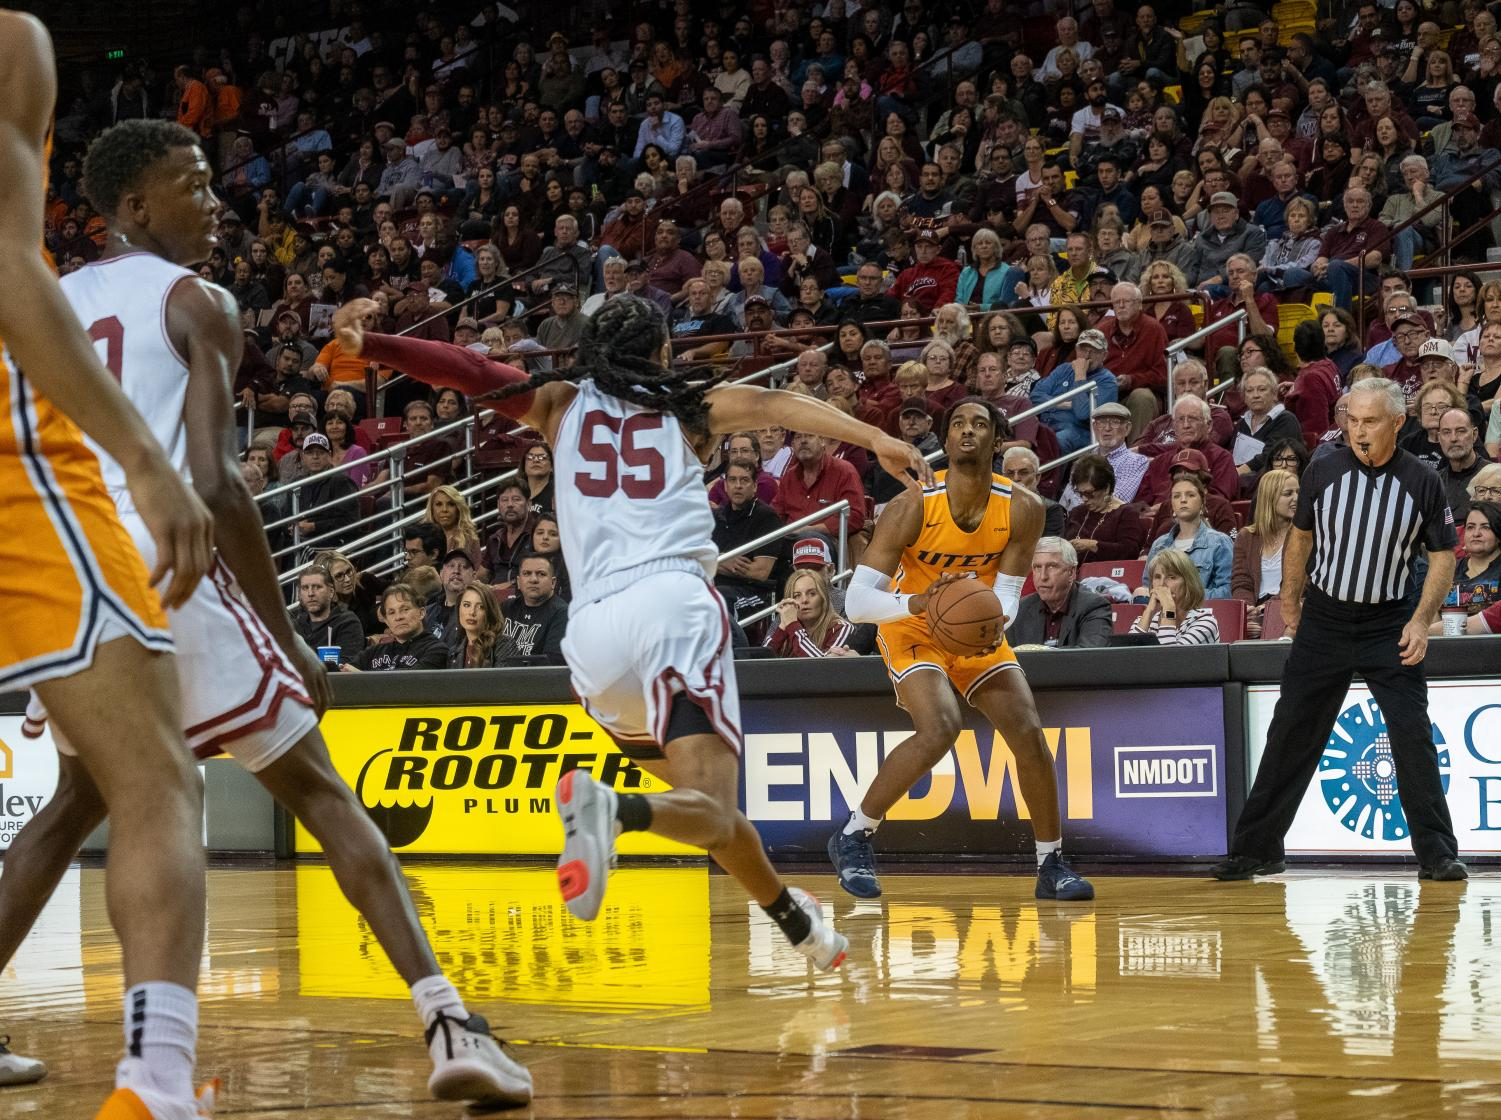 The Miners were defeated by longtime rival New Mexico State University (NMSU) Tuesdaynight.